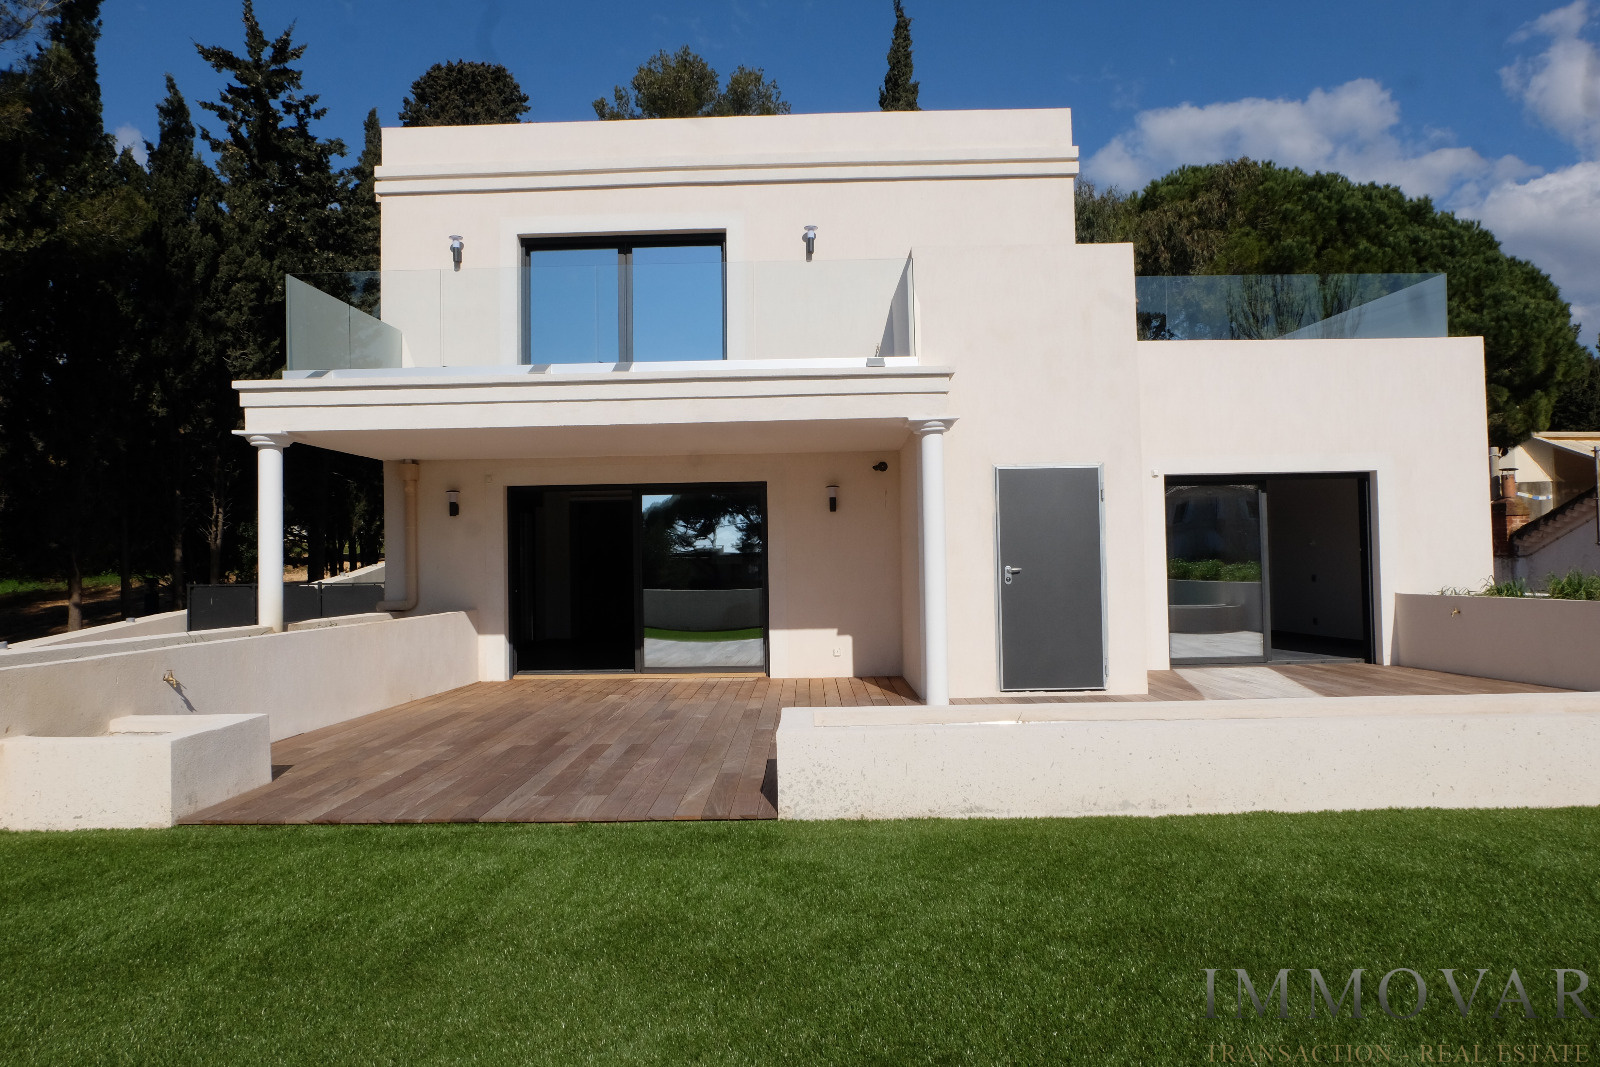 Vente 4 pi ces bandol agence immovar for Modele de villa contemporaine